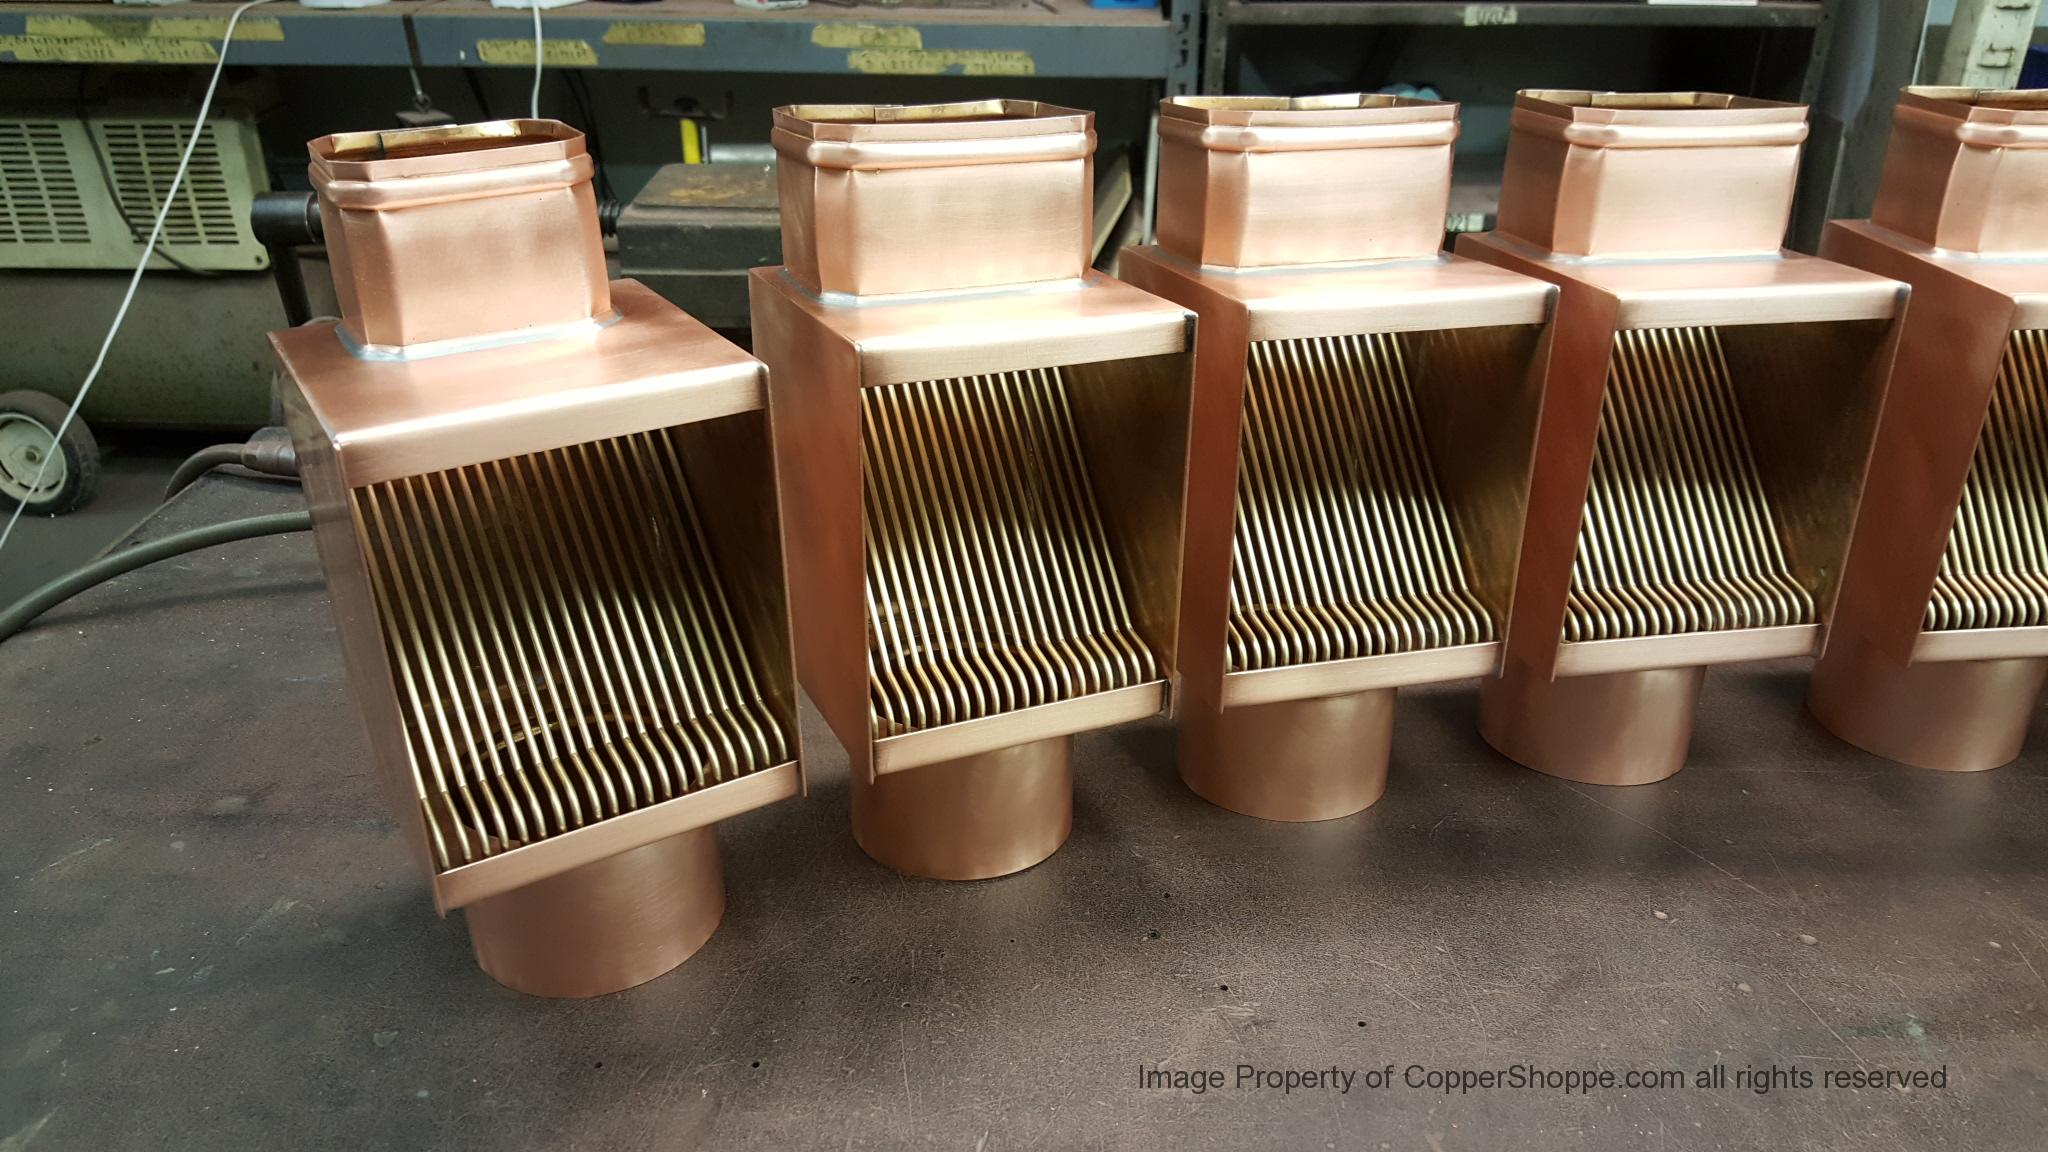 AutoClear Brasstonian Copper Downspout Leaf and Debris Diverters, Filters Cleanouts for Rectangular Downspouts